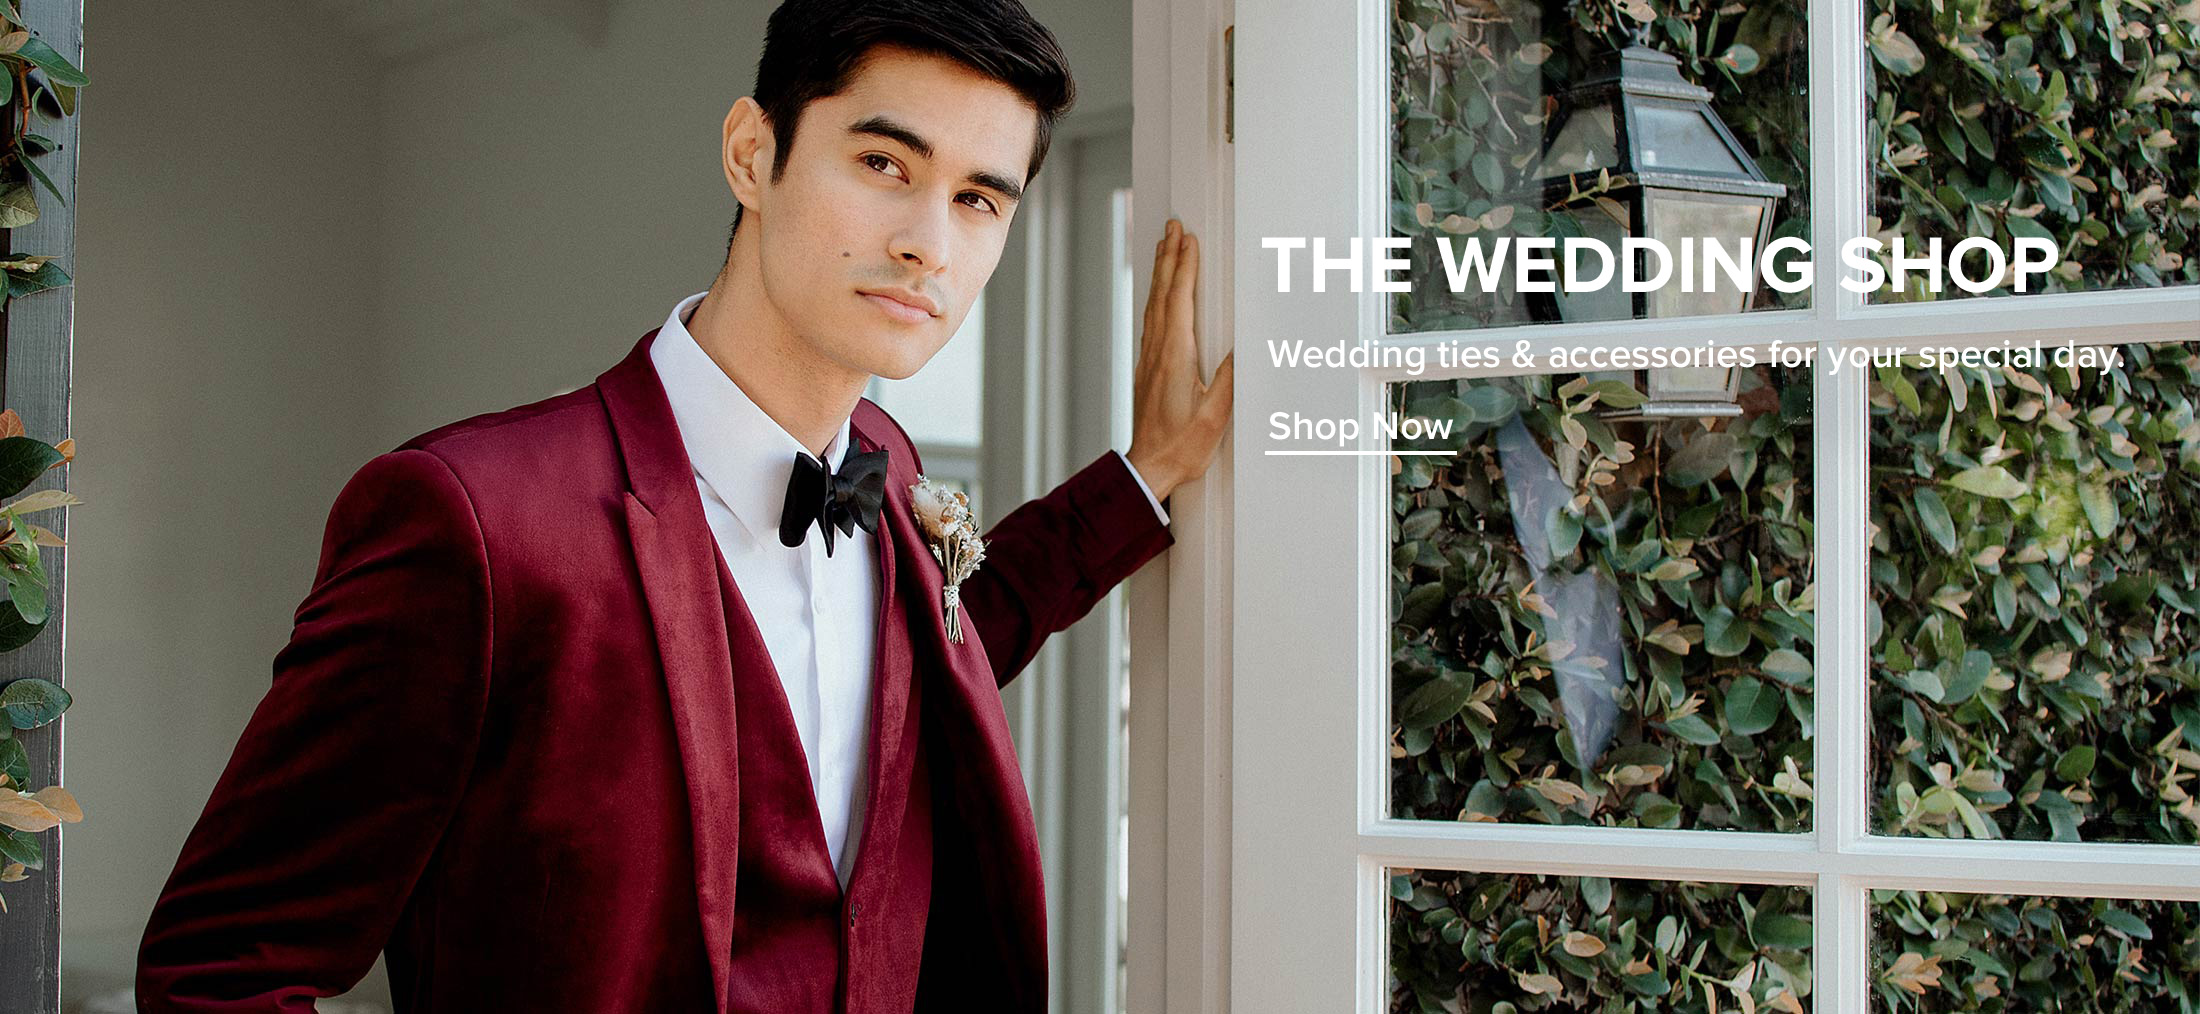 Wedding ties & Accessories for your special day. Click to shop Wedding ties & accessories.